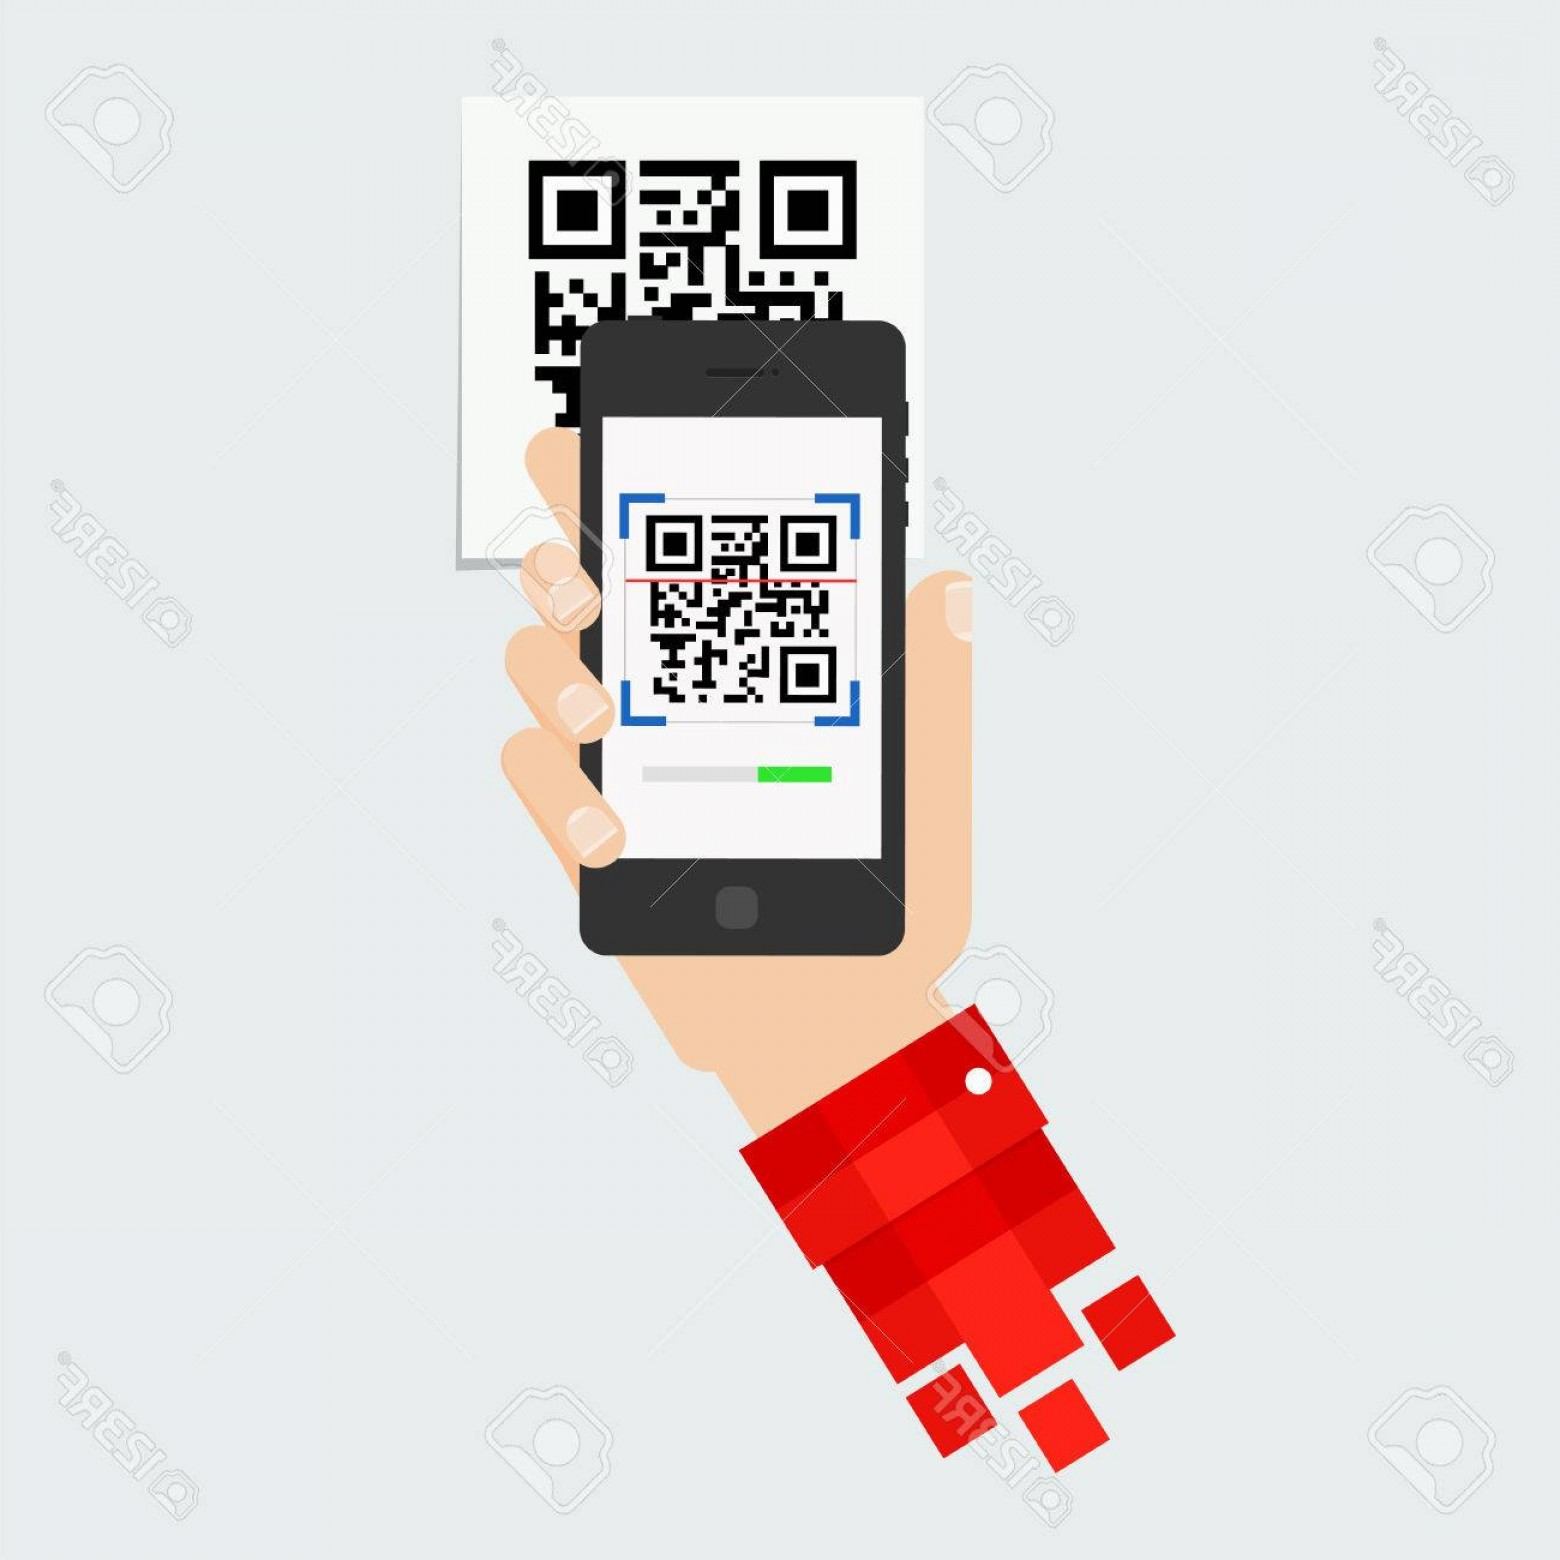 QR Mobile Phone Vector: Photostock Vector Qr Code Scanning Mobile Phone Capture Qr Code On Mobile Phone Symbol Scanning Qr Code Concept Recogn